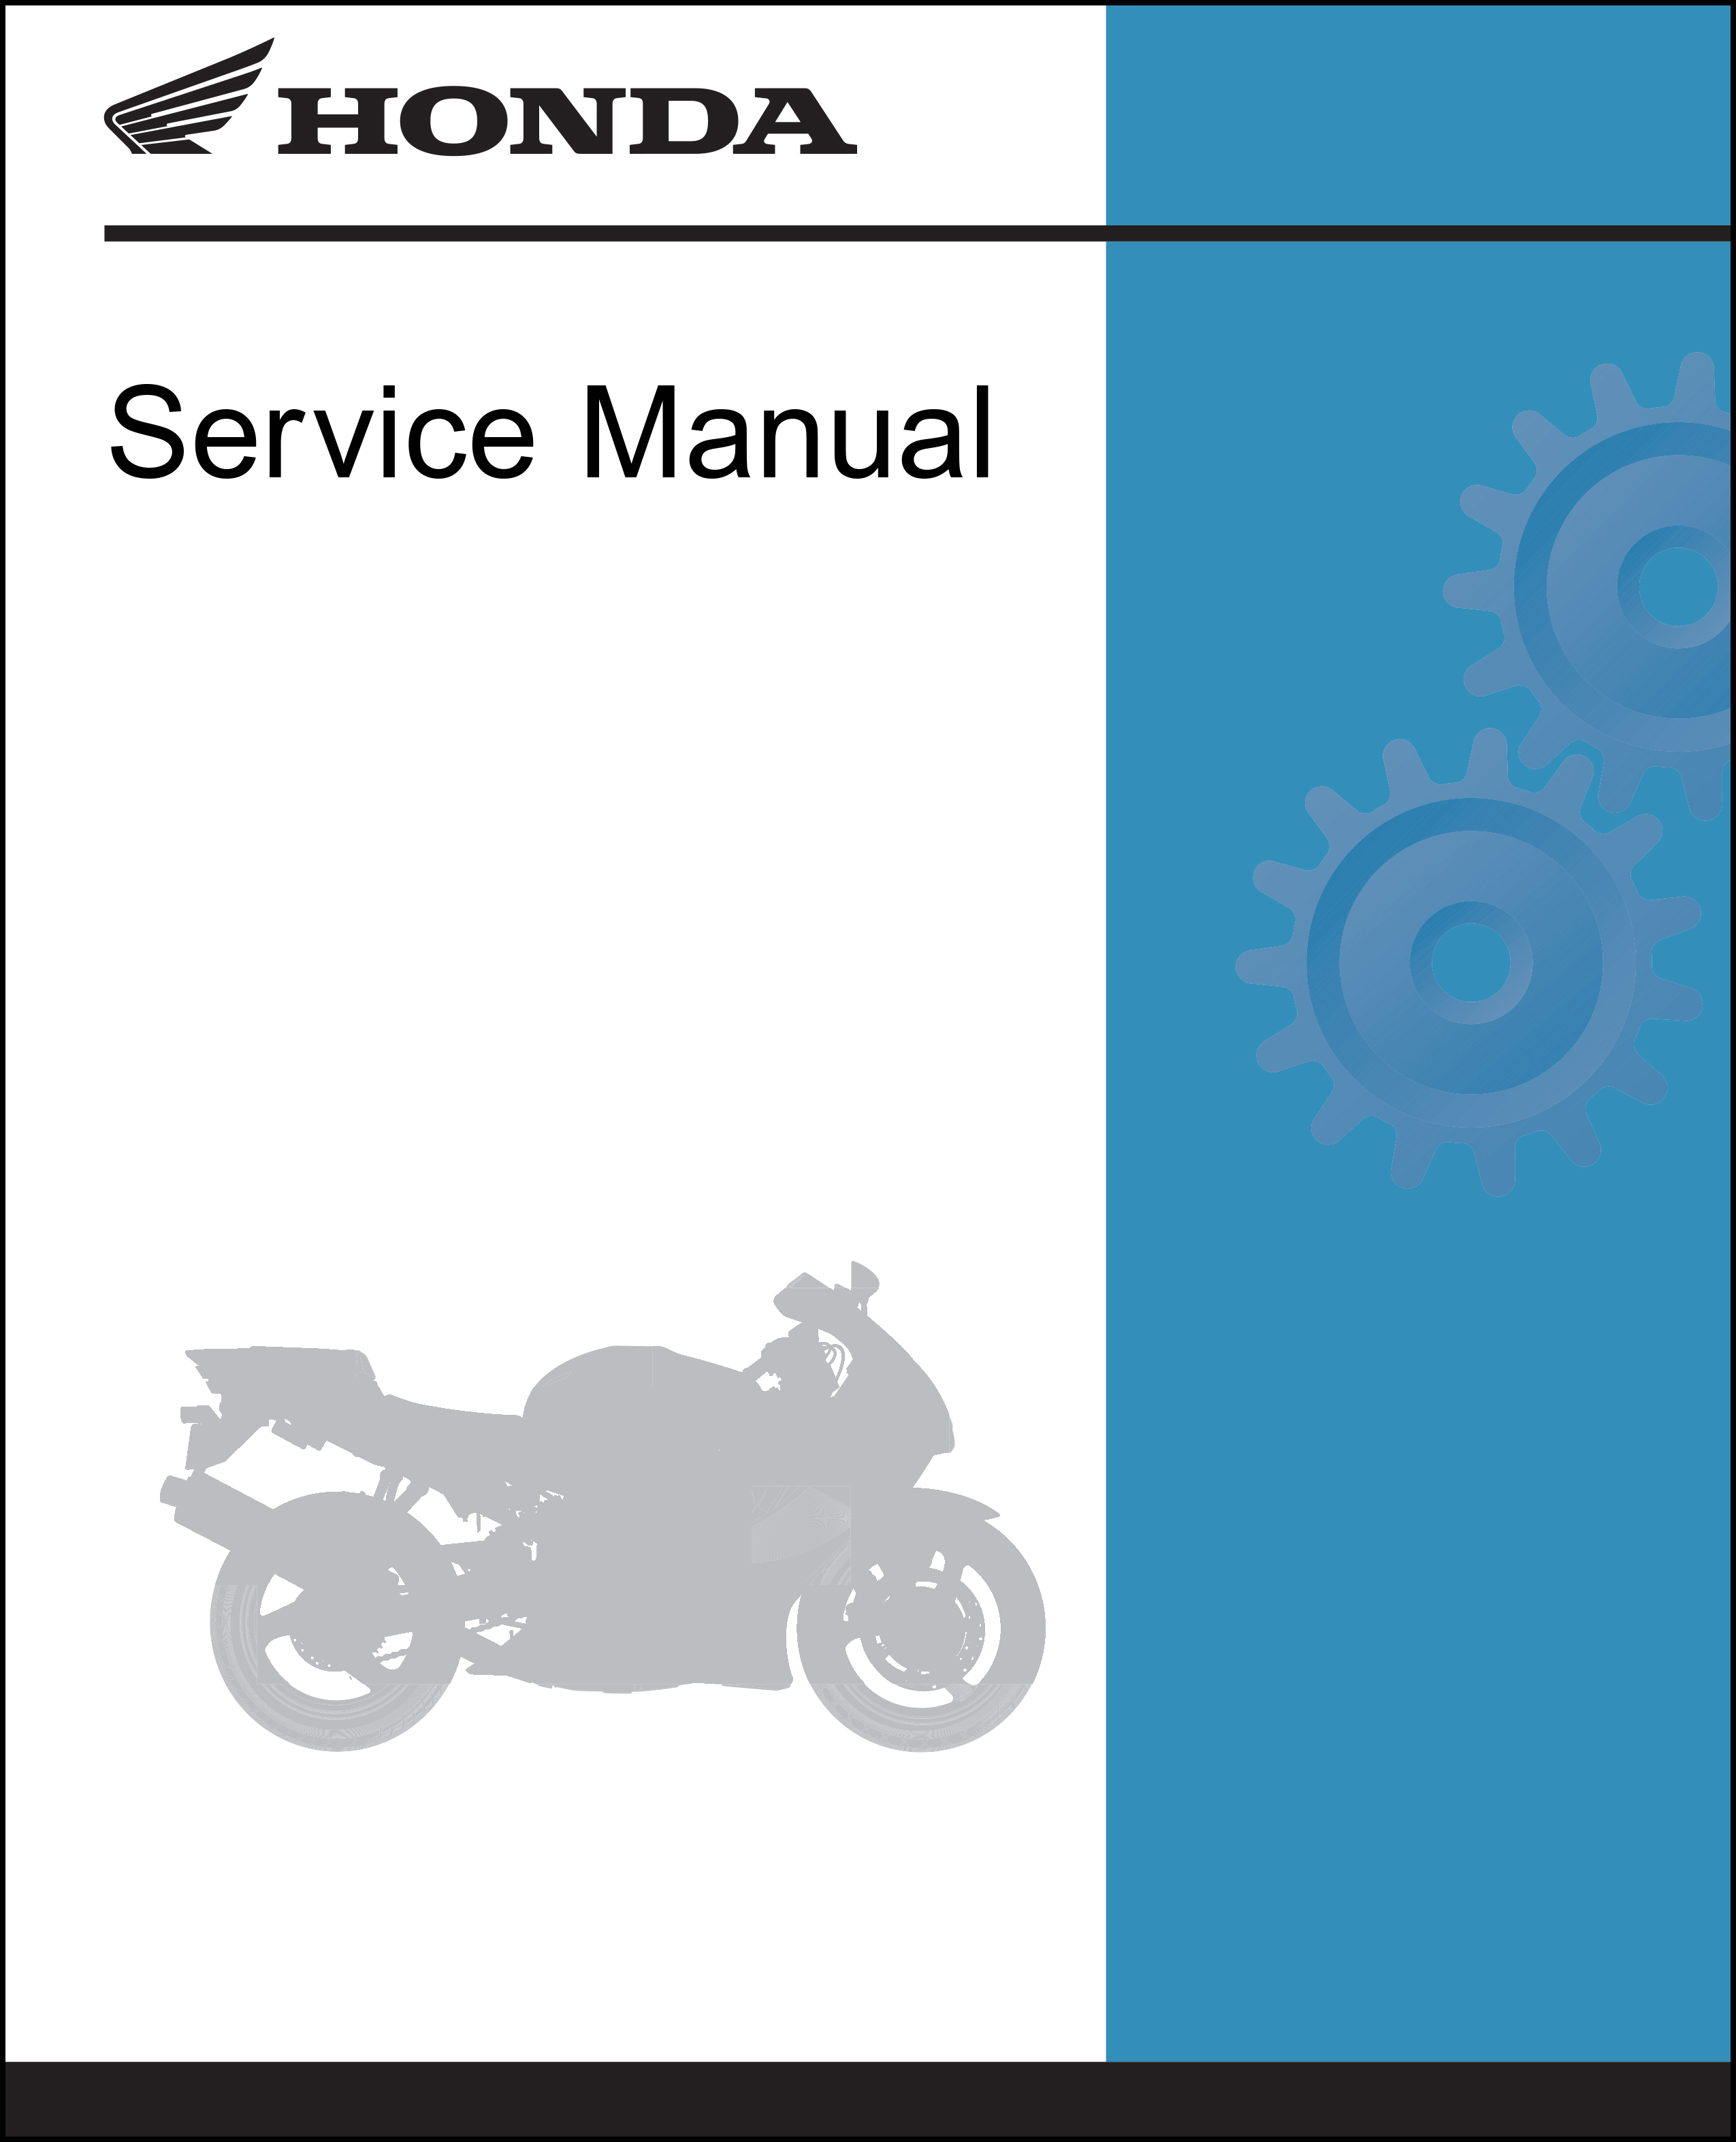 Honda 2014-2018 GROM125/A Service Manual Shop Repair 14 2015 15 2016 16  2017 17